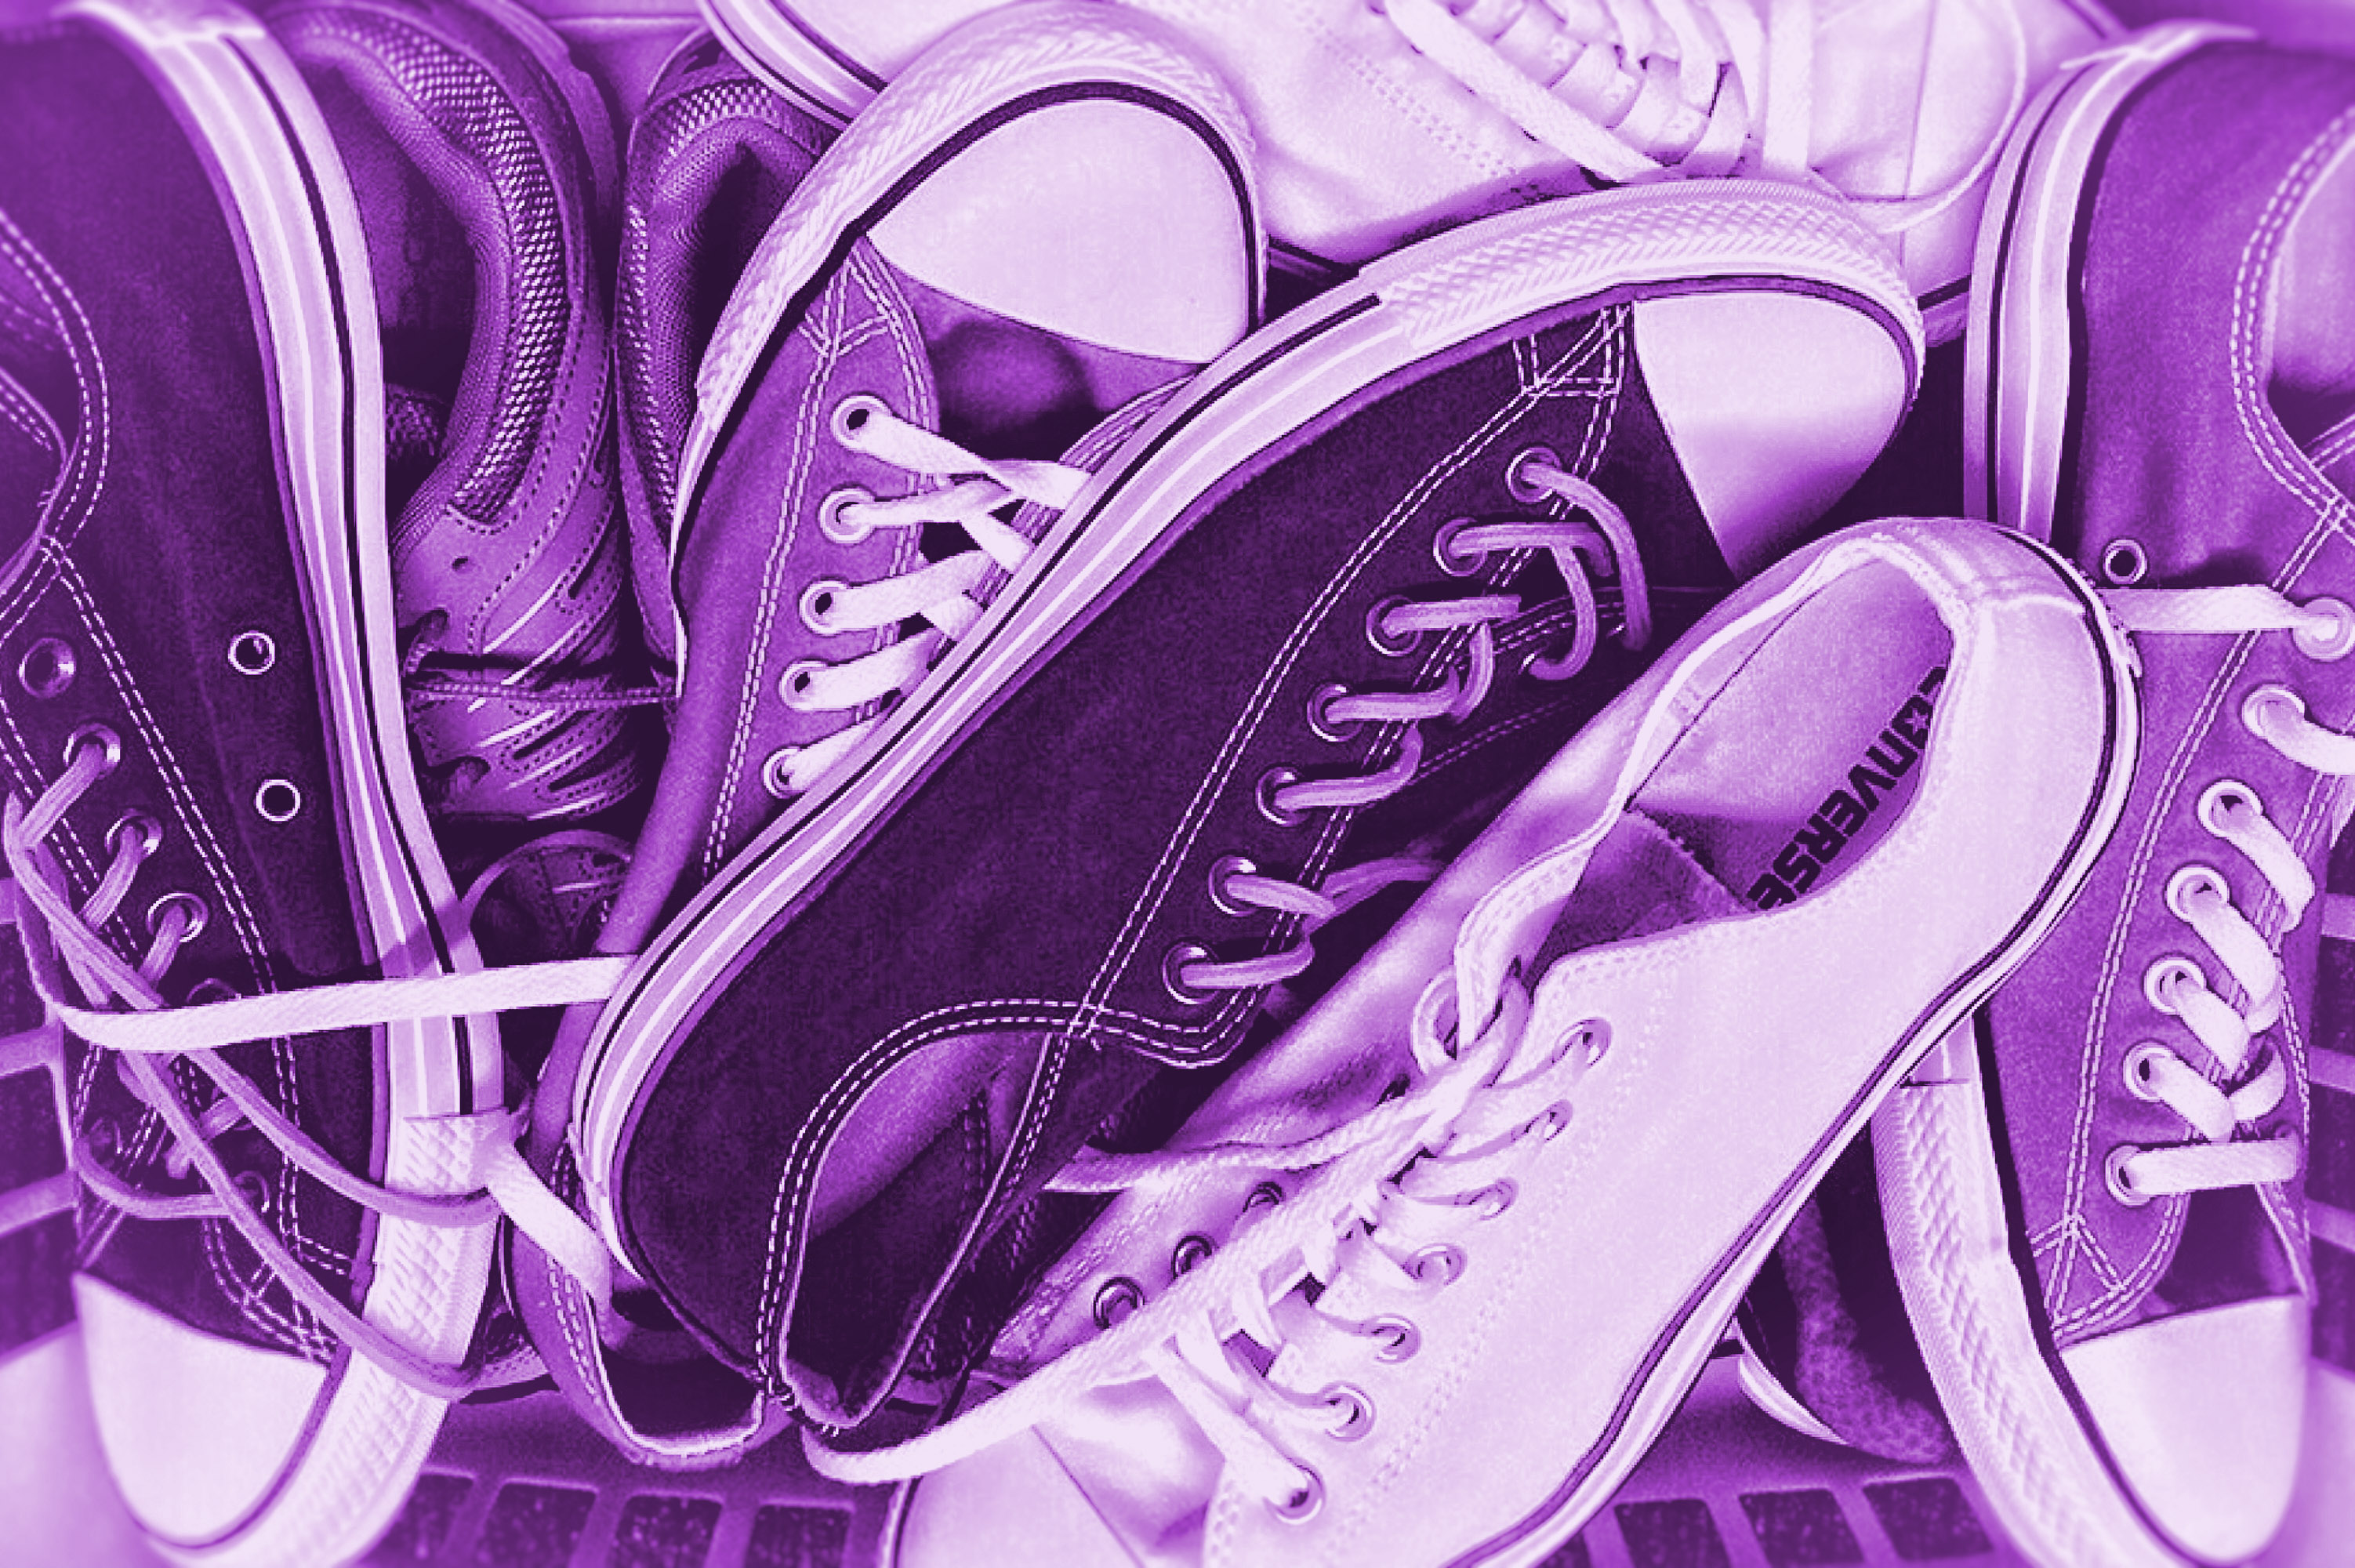 Colorized sneakers - old sneakers photo